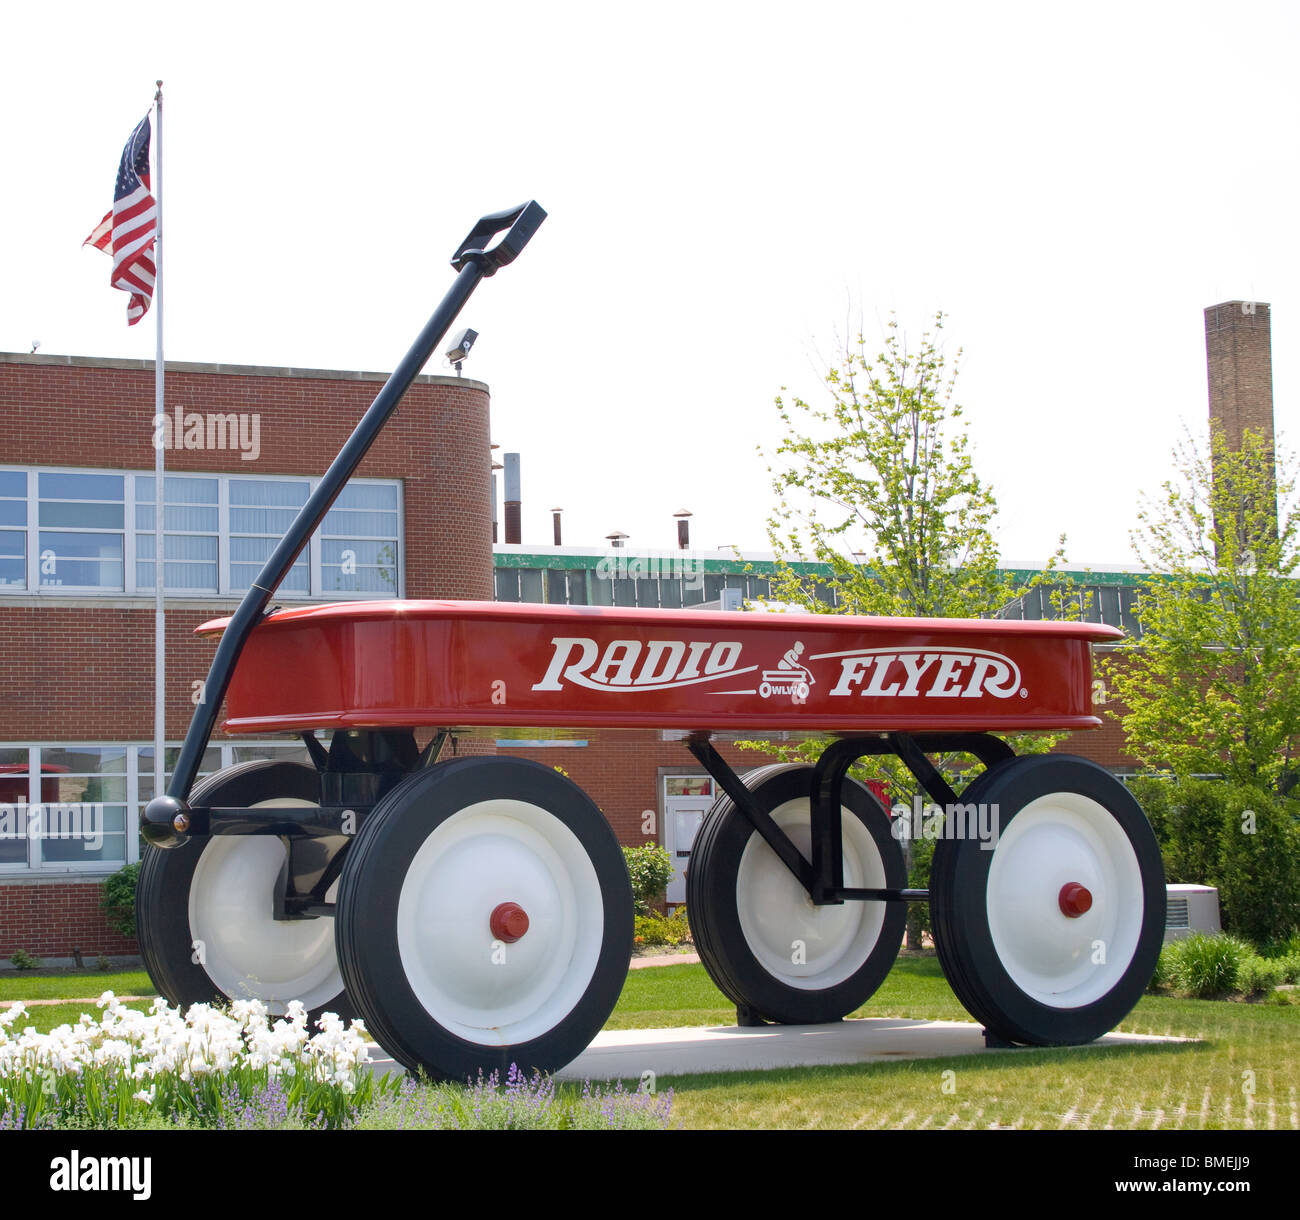 Giant Wagon at the Radio Flyer headquarters in Elmwood Park Illinois Stock Photo